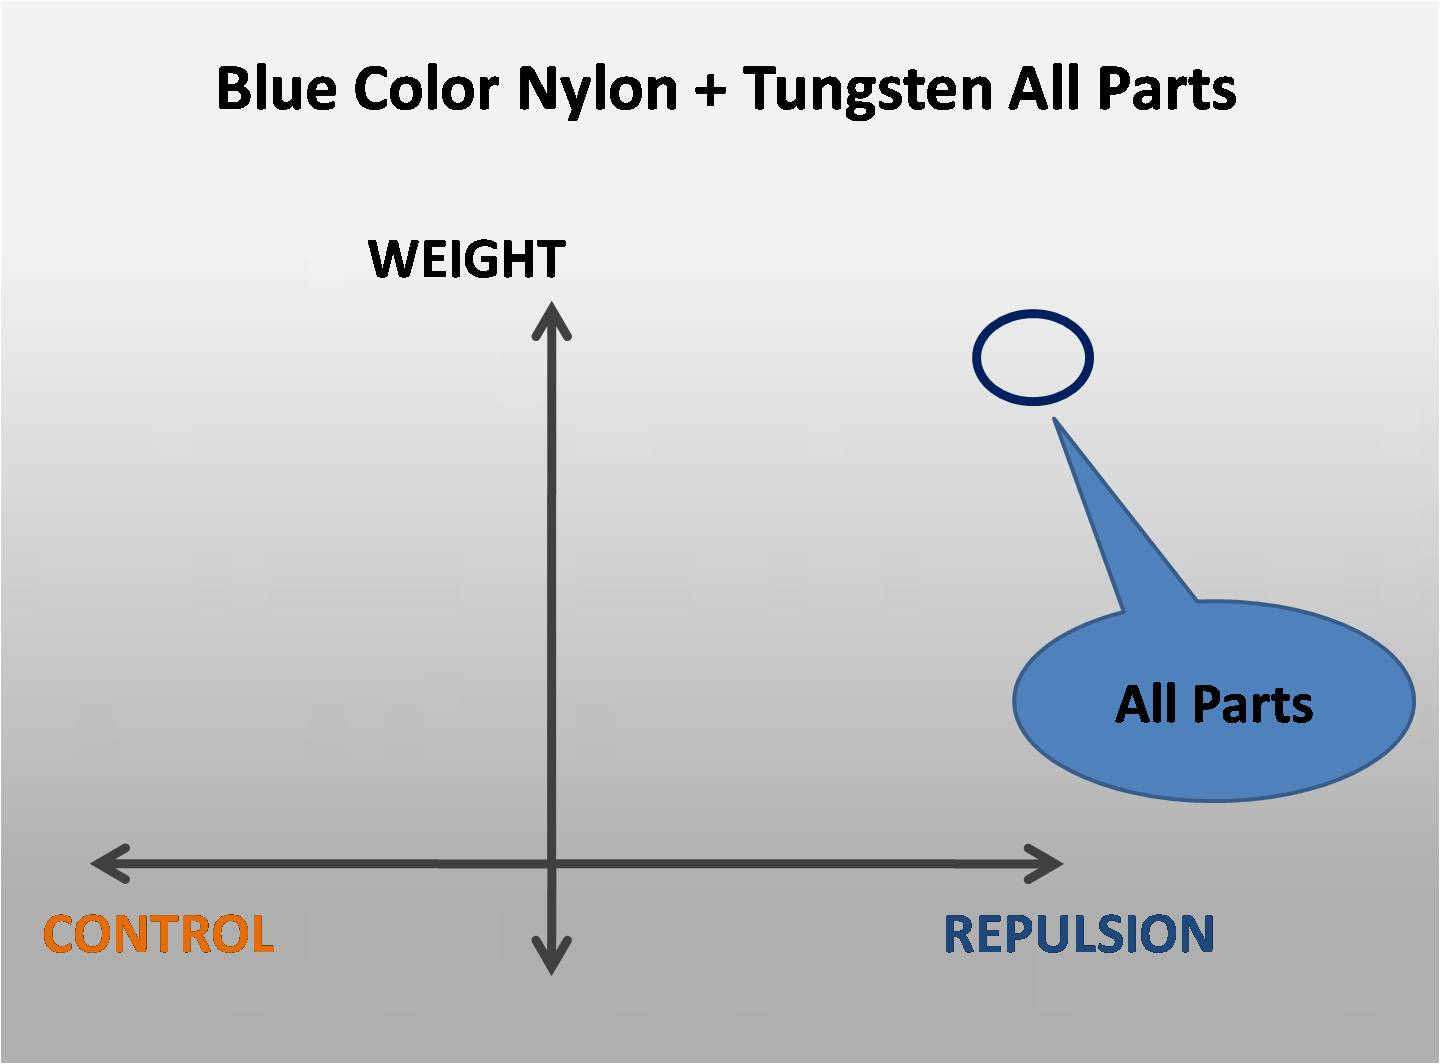 Blue Color Nylon + Tungsten All Parts